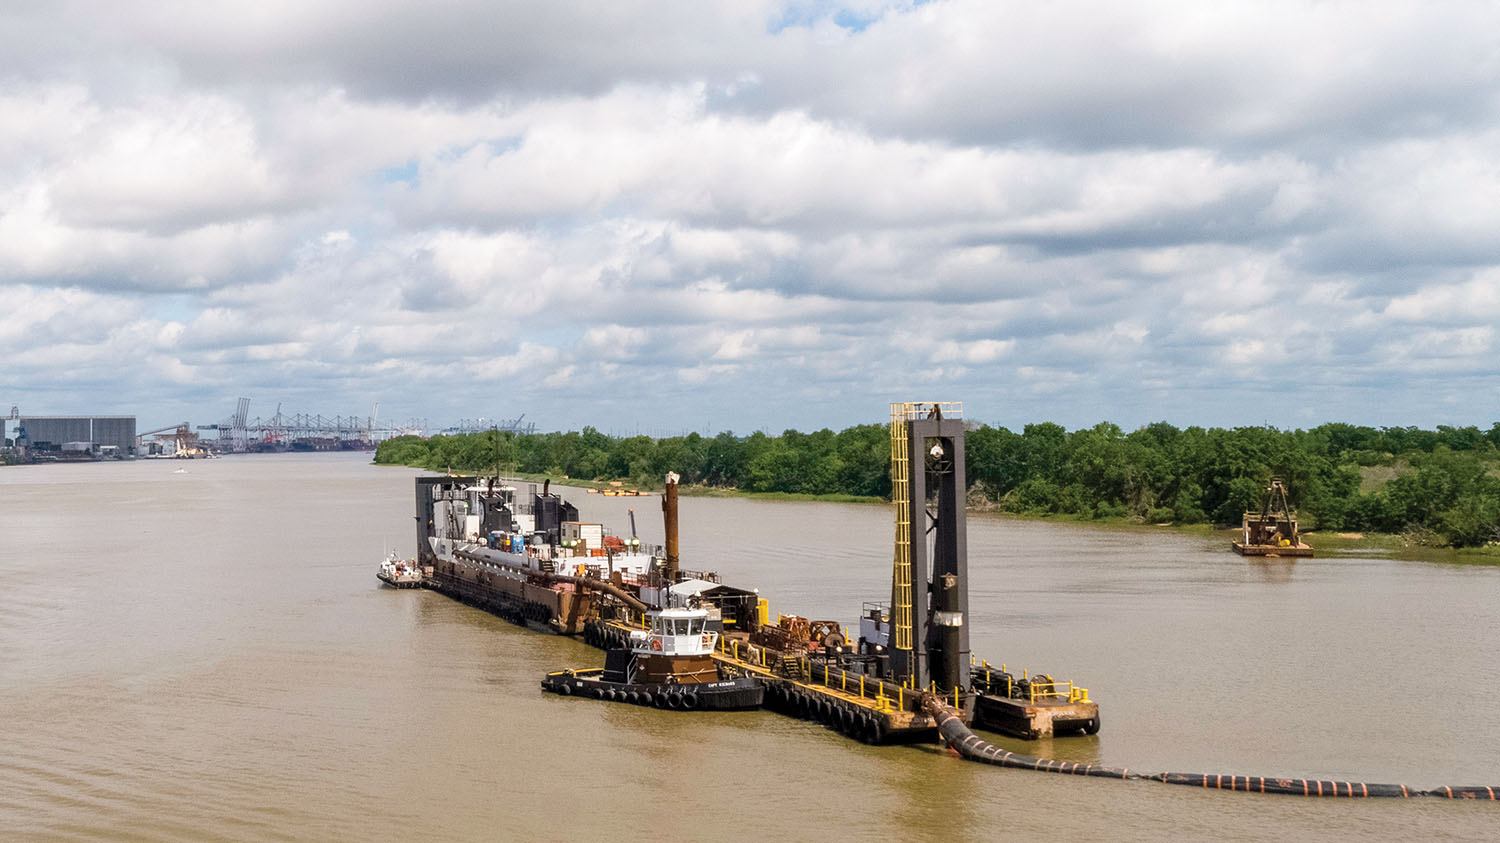 The Dredge Charleston of Norfolk Dredging is shown deepening the inner harbor of the Savannah River May 28. The project is on schedule for completion in January 2022. (Photo courtesy of Georgia Ports Authority)